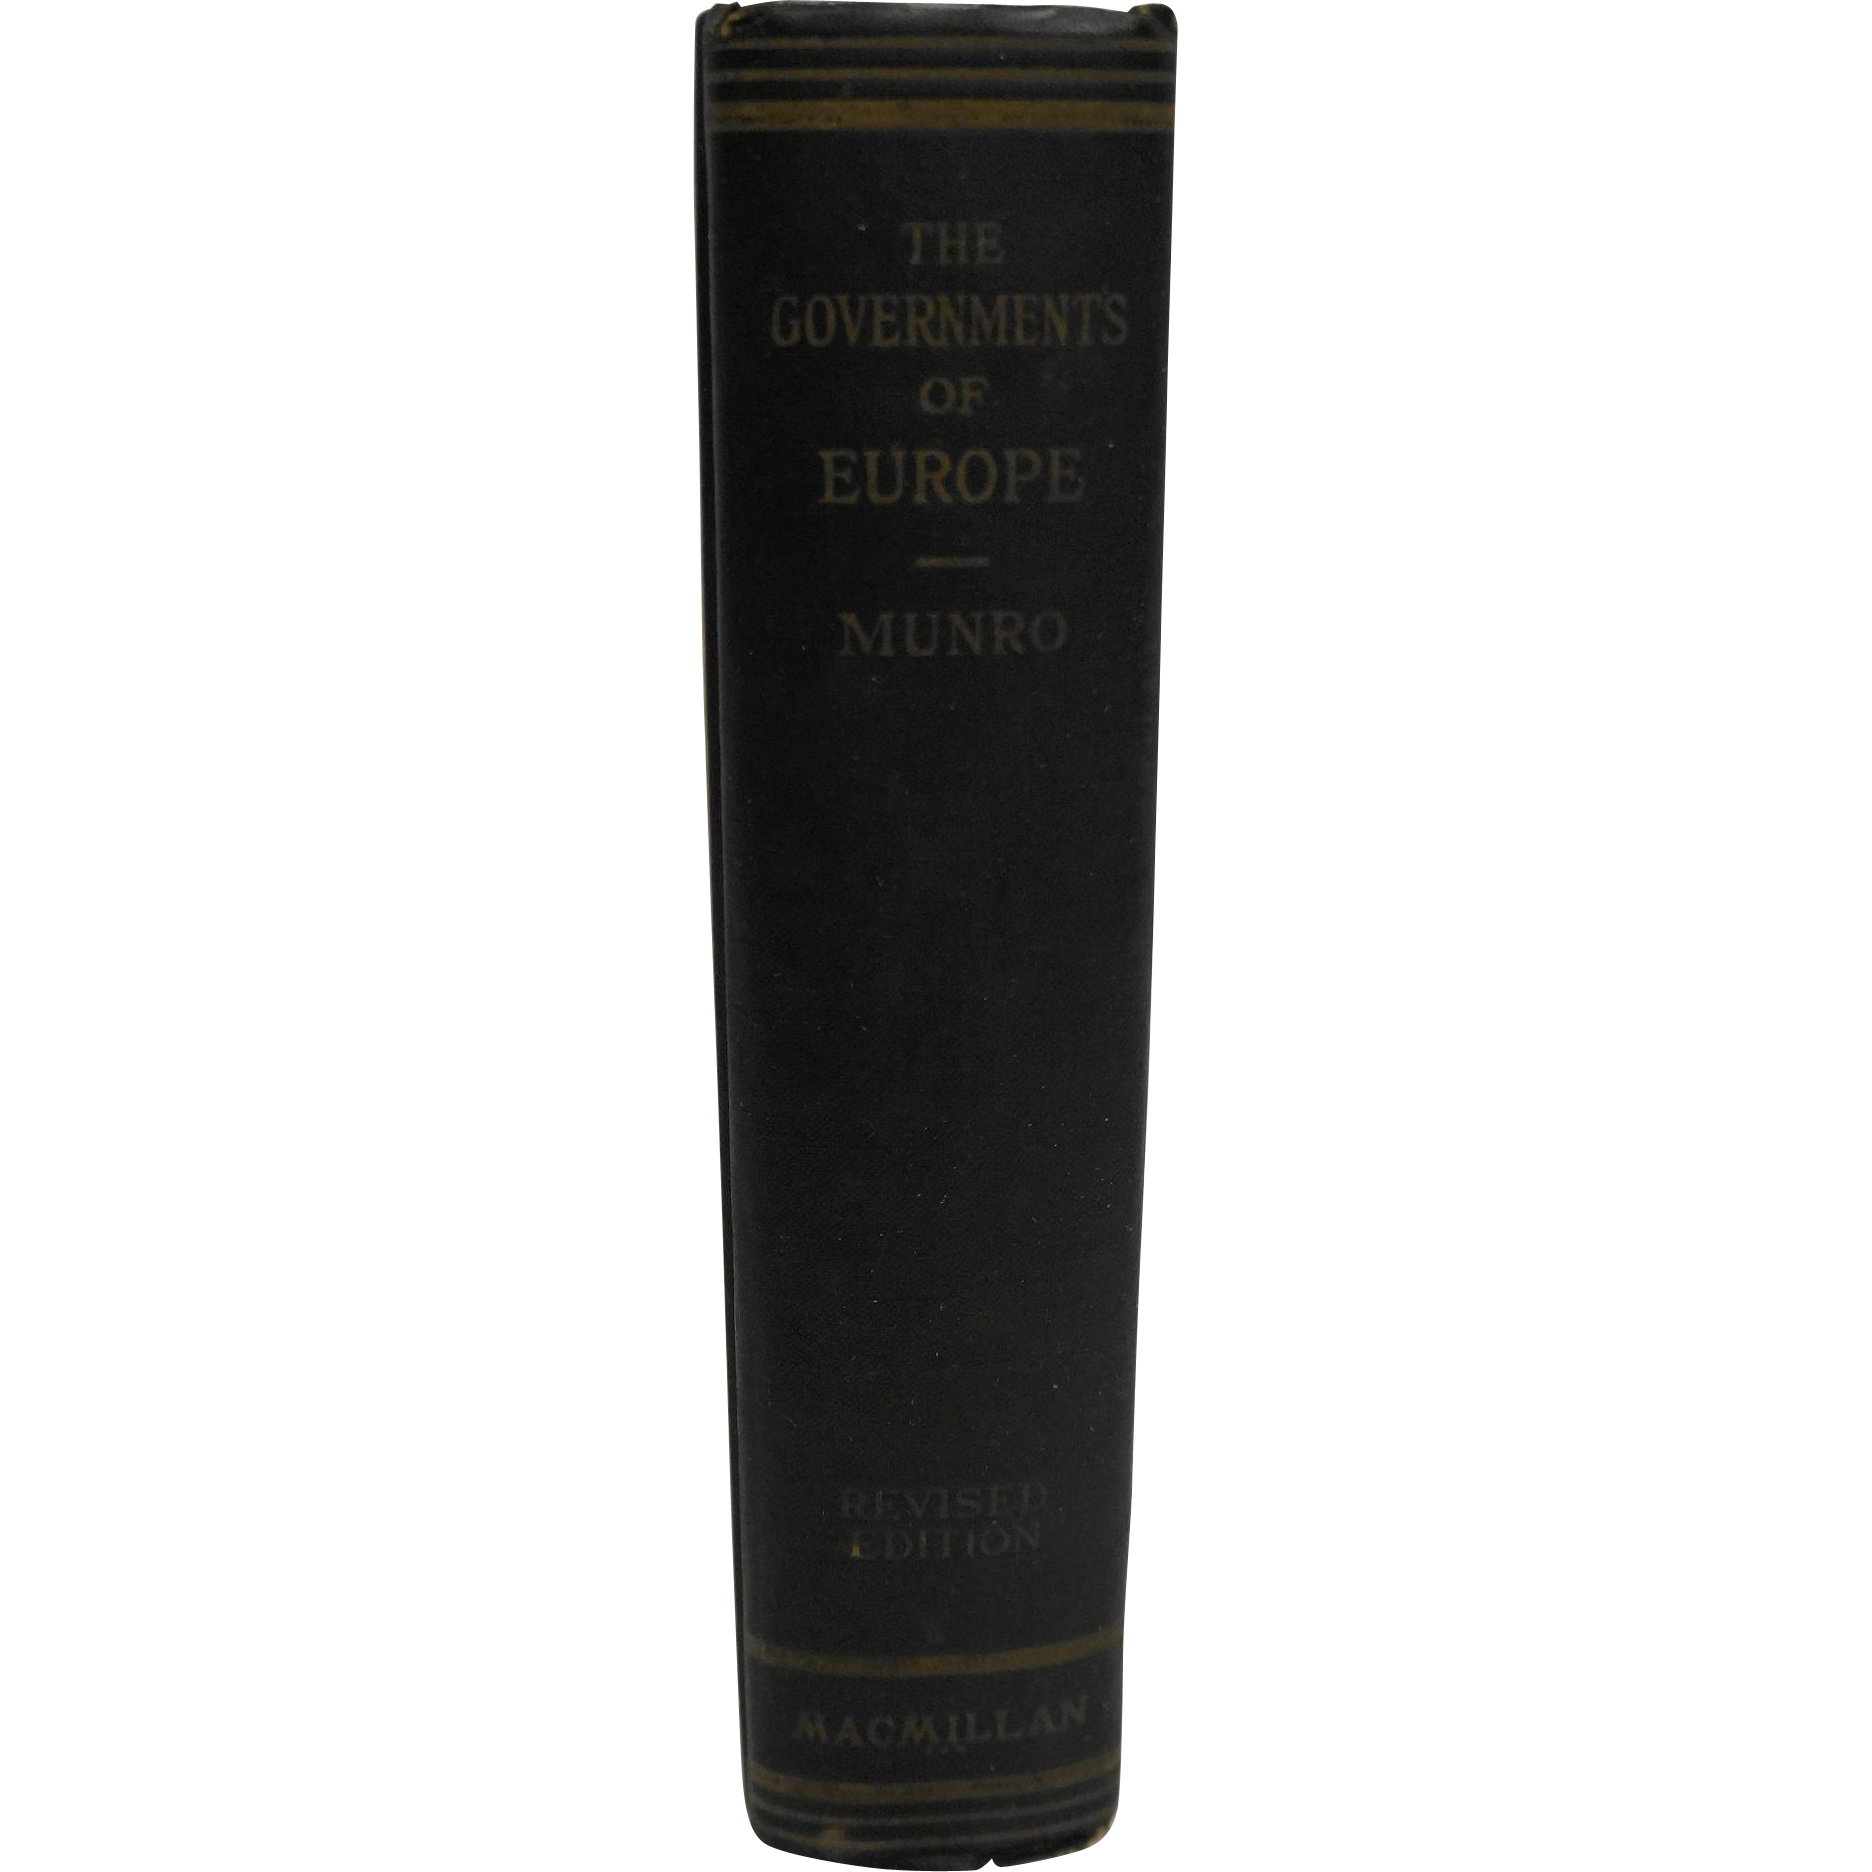 The Governments of Europe William Munro 1931 New Revised Edition MacMillan Publishing Hardcover